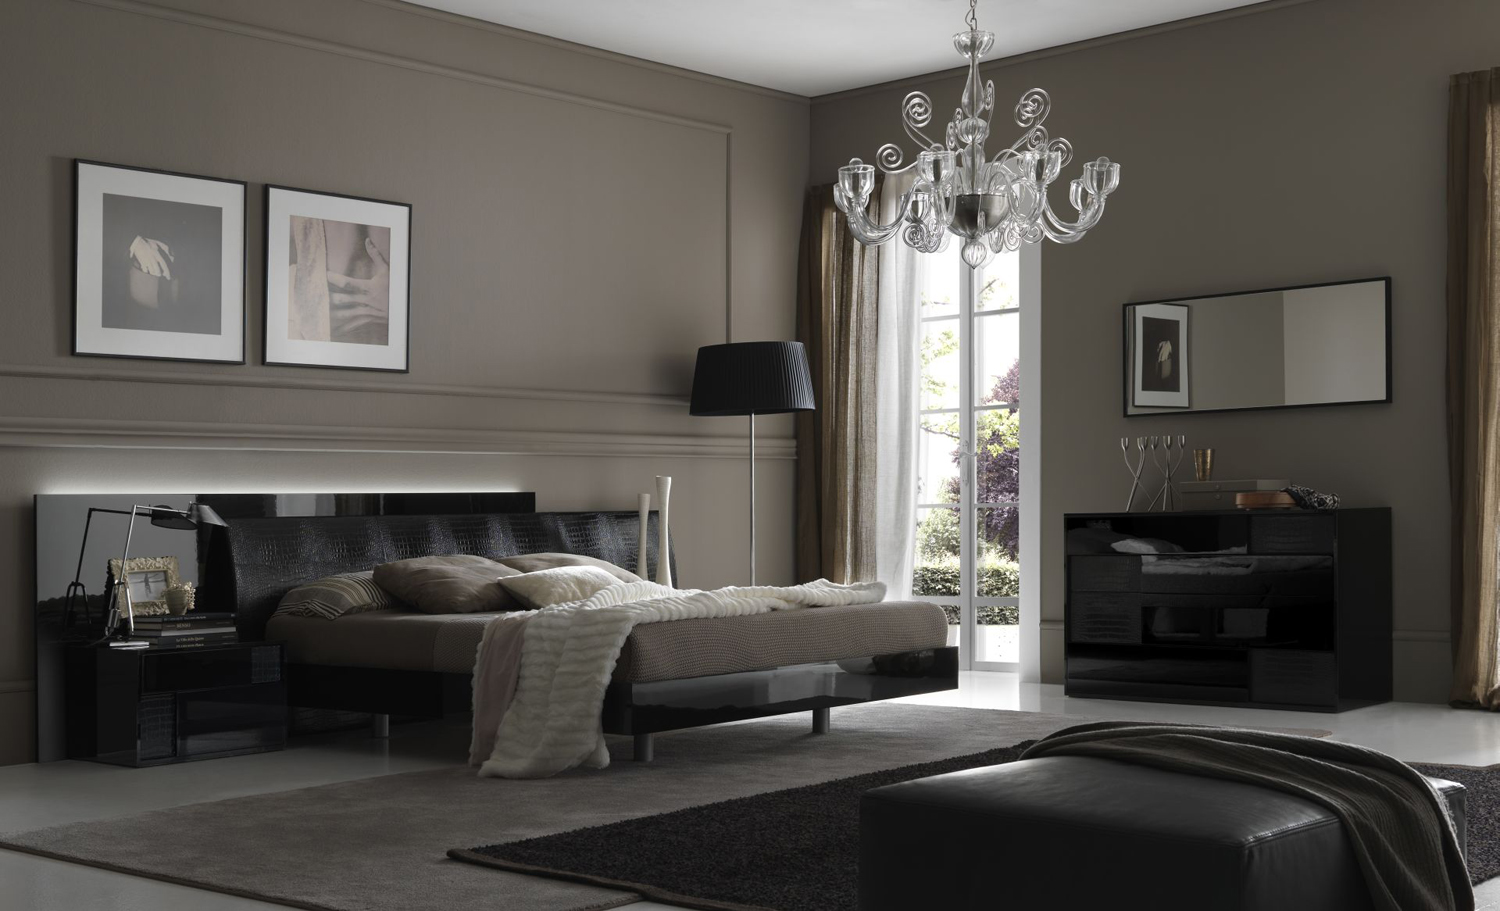 Bedroom decorating ideas from evinco for Contemporary bedroom ideas